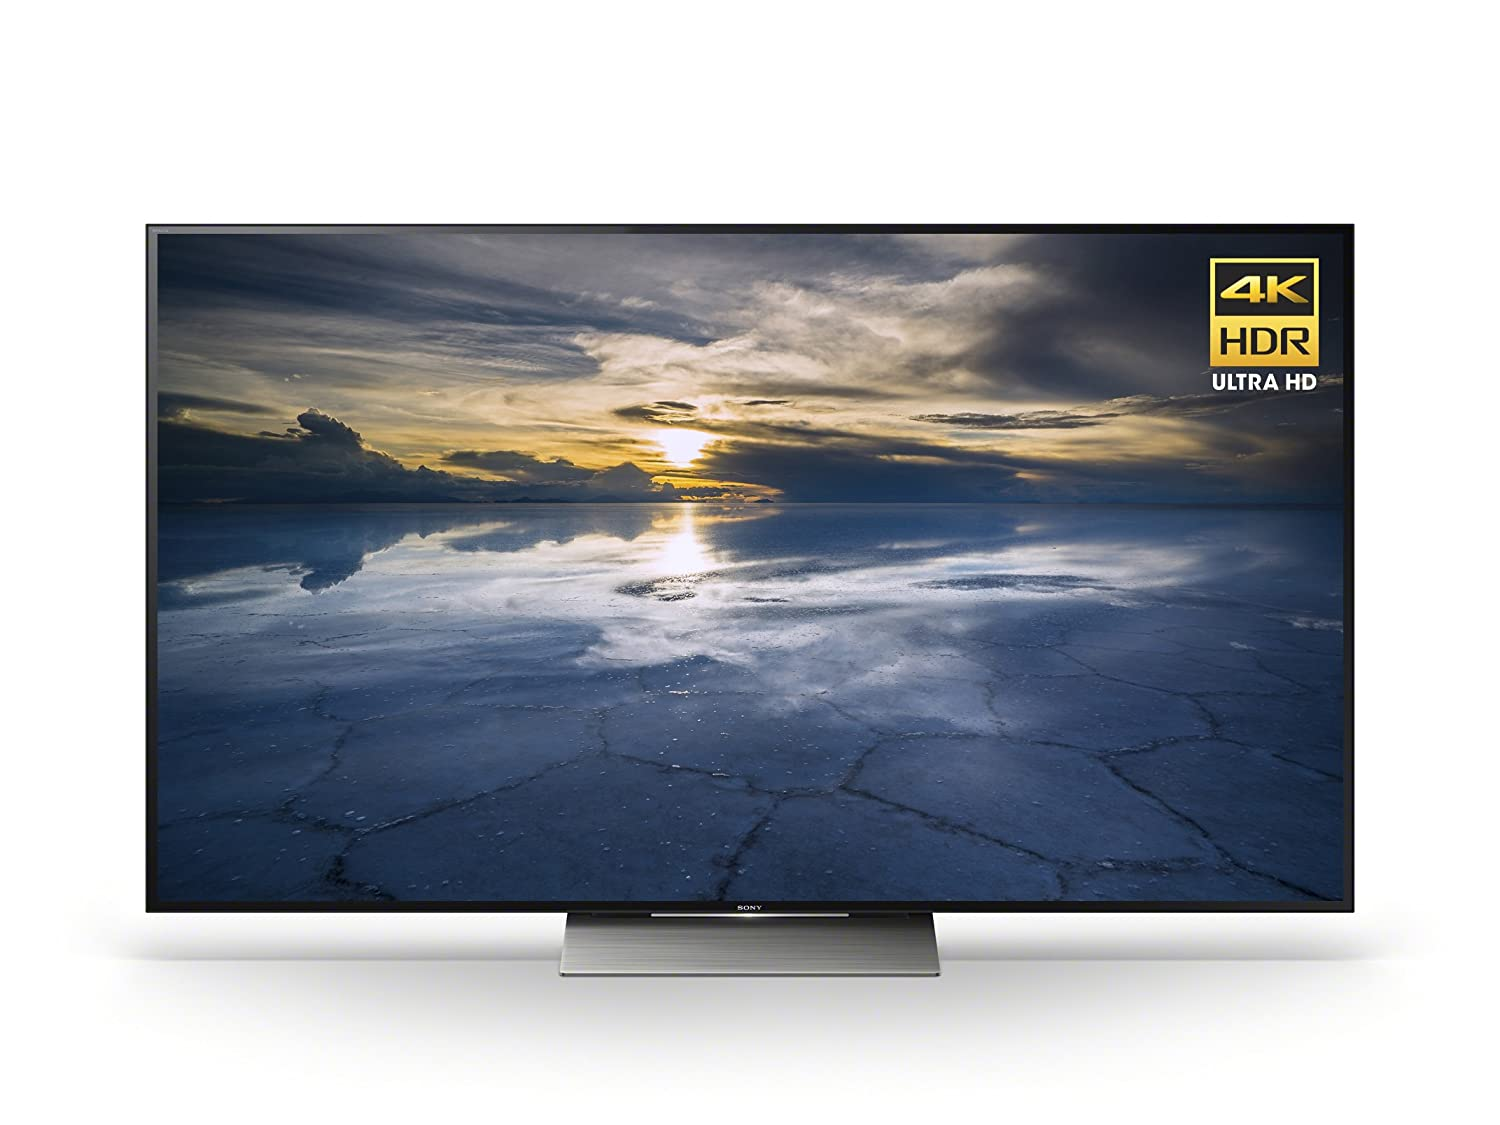 Sony XBR75X940D 75-Inch 4K HDR Ultra HD TV (2016 Model)